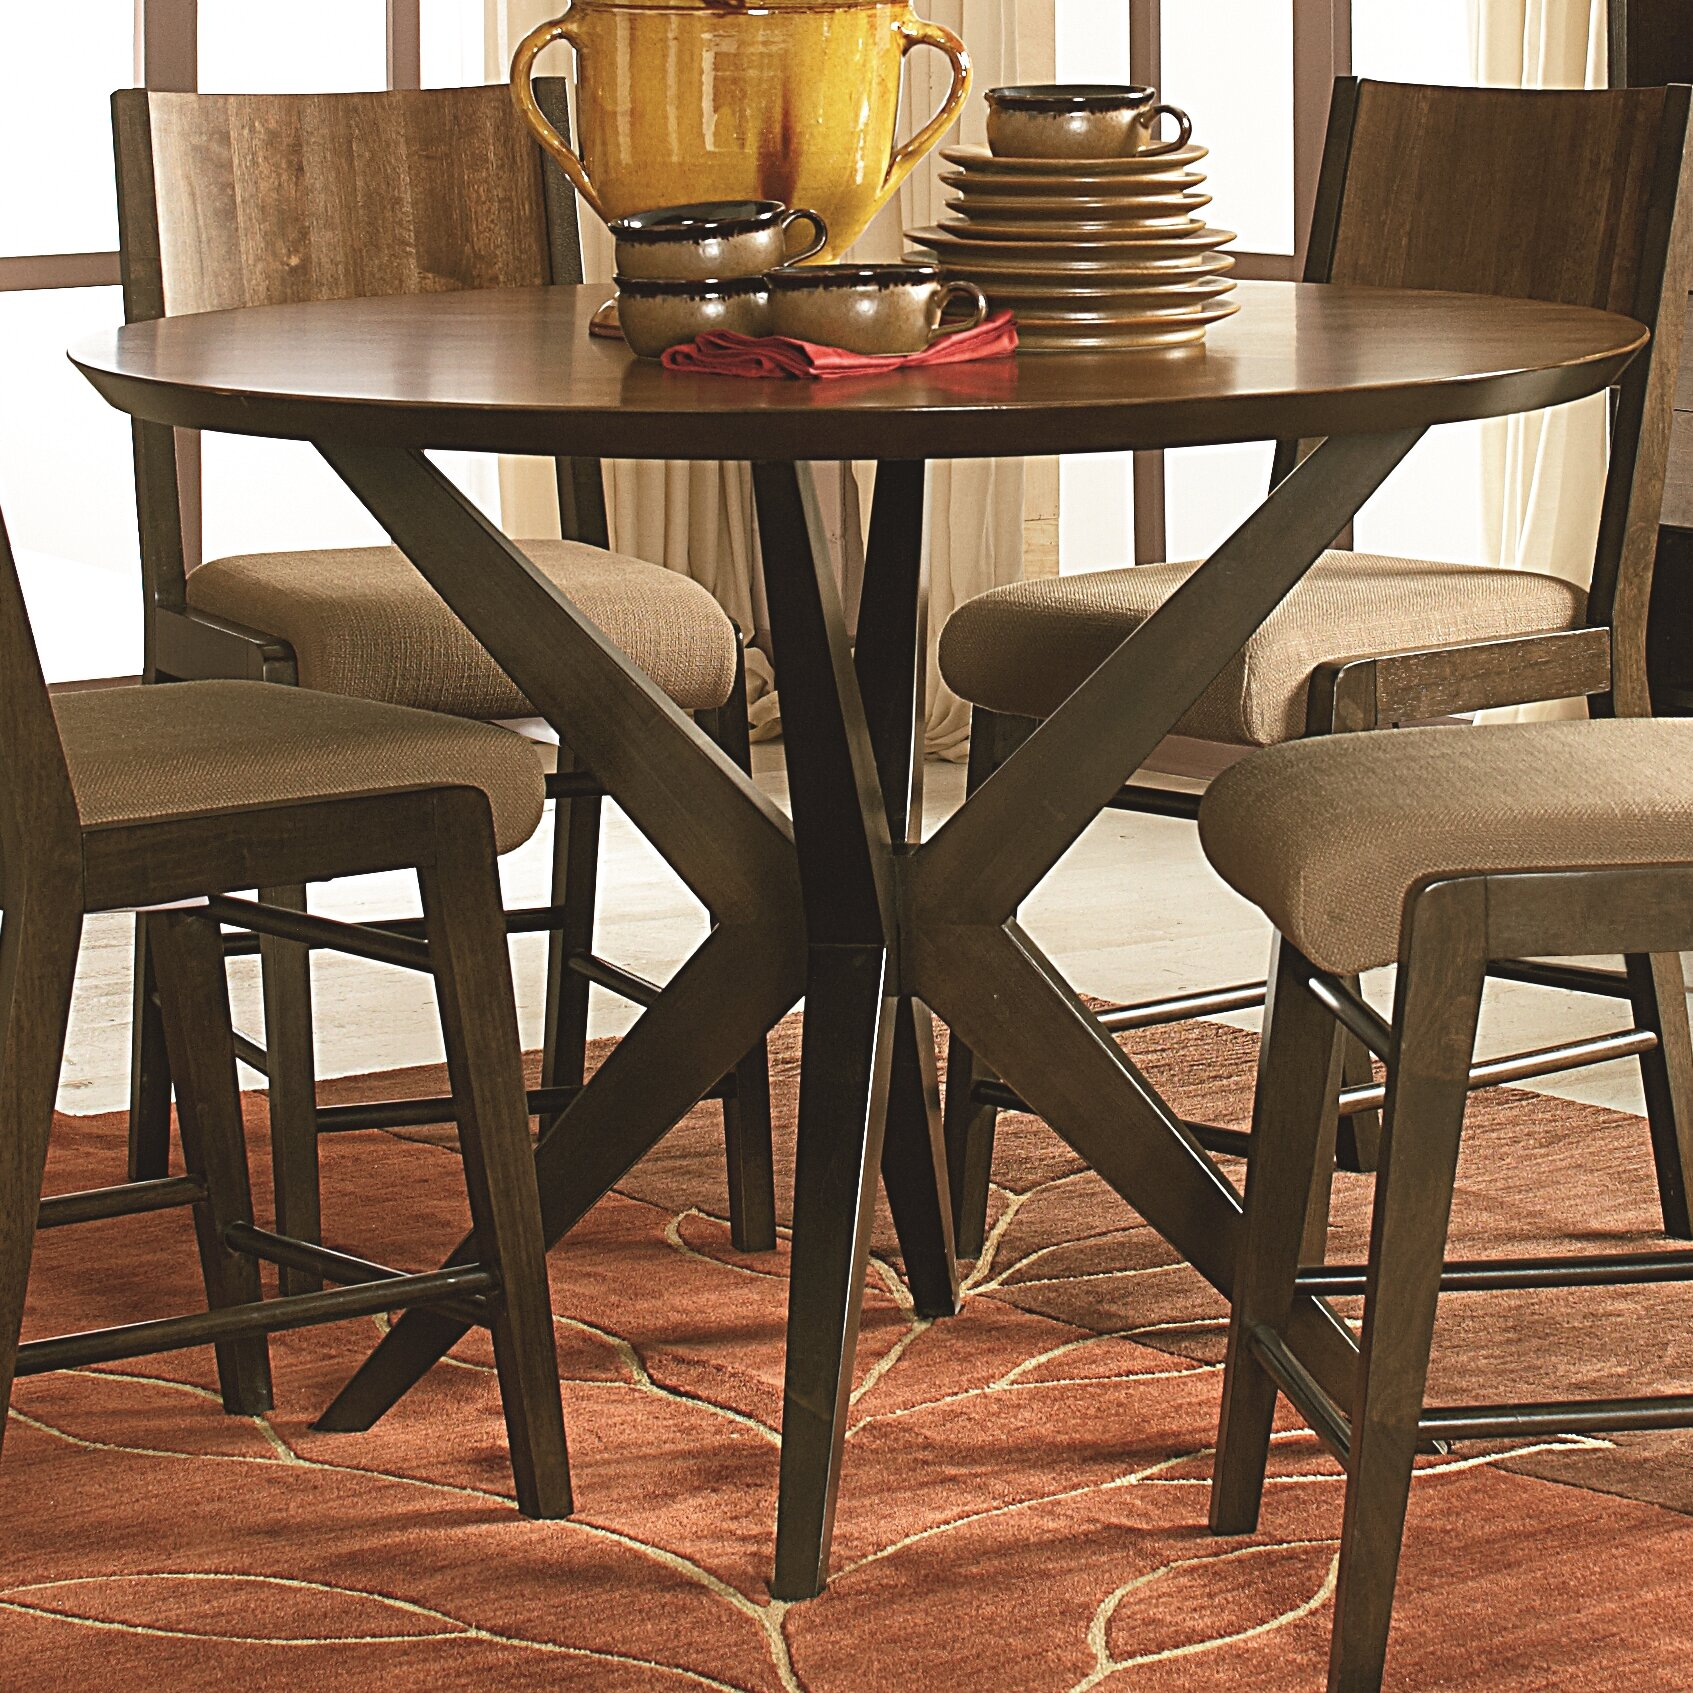 Navy And Gold Dining Room, 100 Triangle Pub Table Dining Room Sets U0026 Kitchen Furniture Mathis Brothers Bar Stools Pub Stools U0026 Bistro Chairs Mathis Brothers Amazon Com Counter Height Table With Faux Marble Top And 4 High